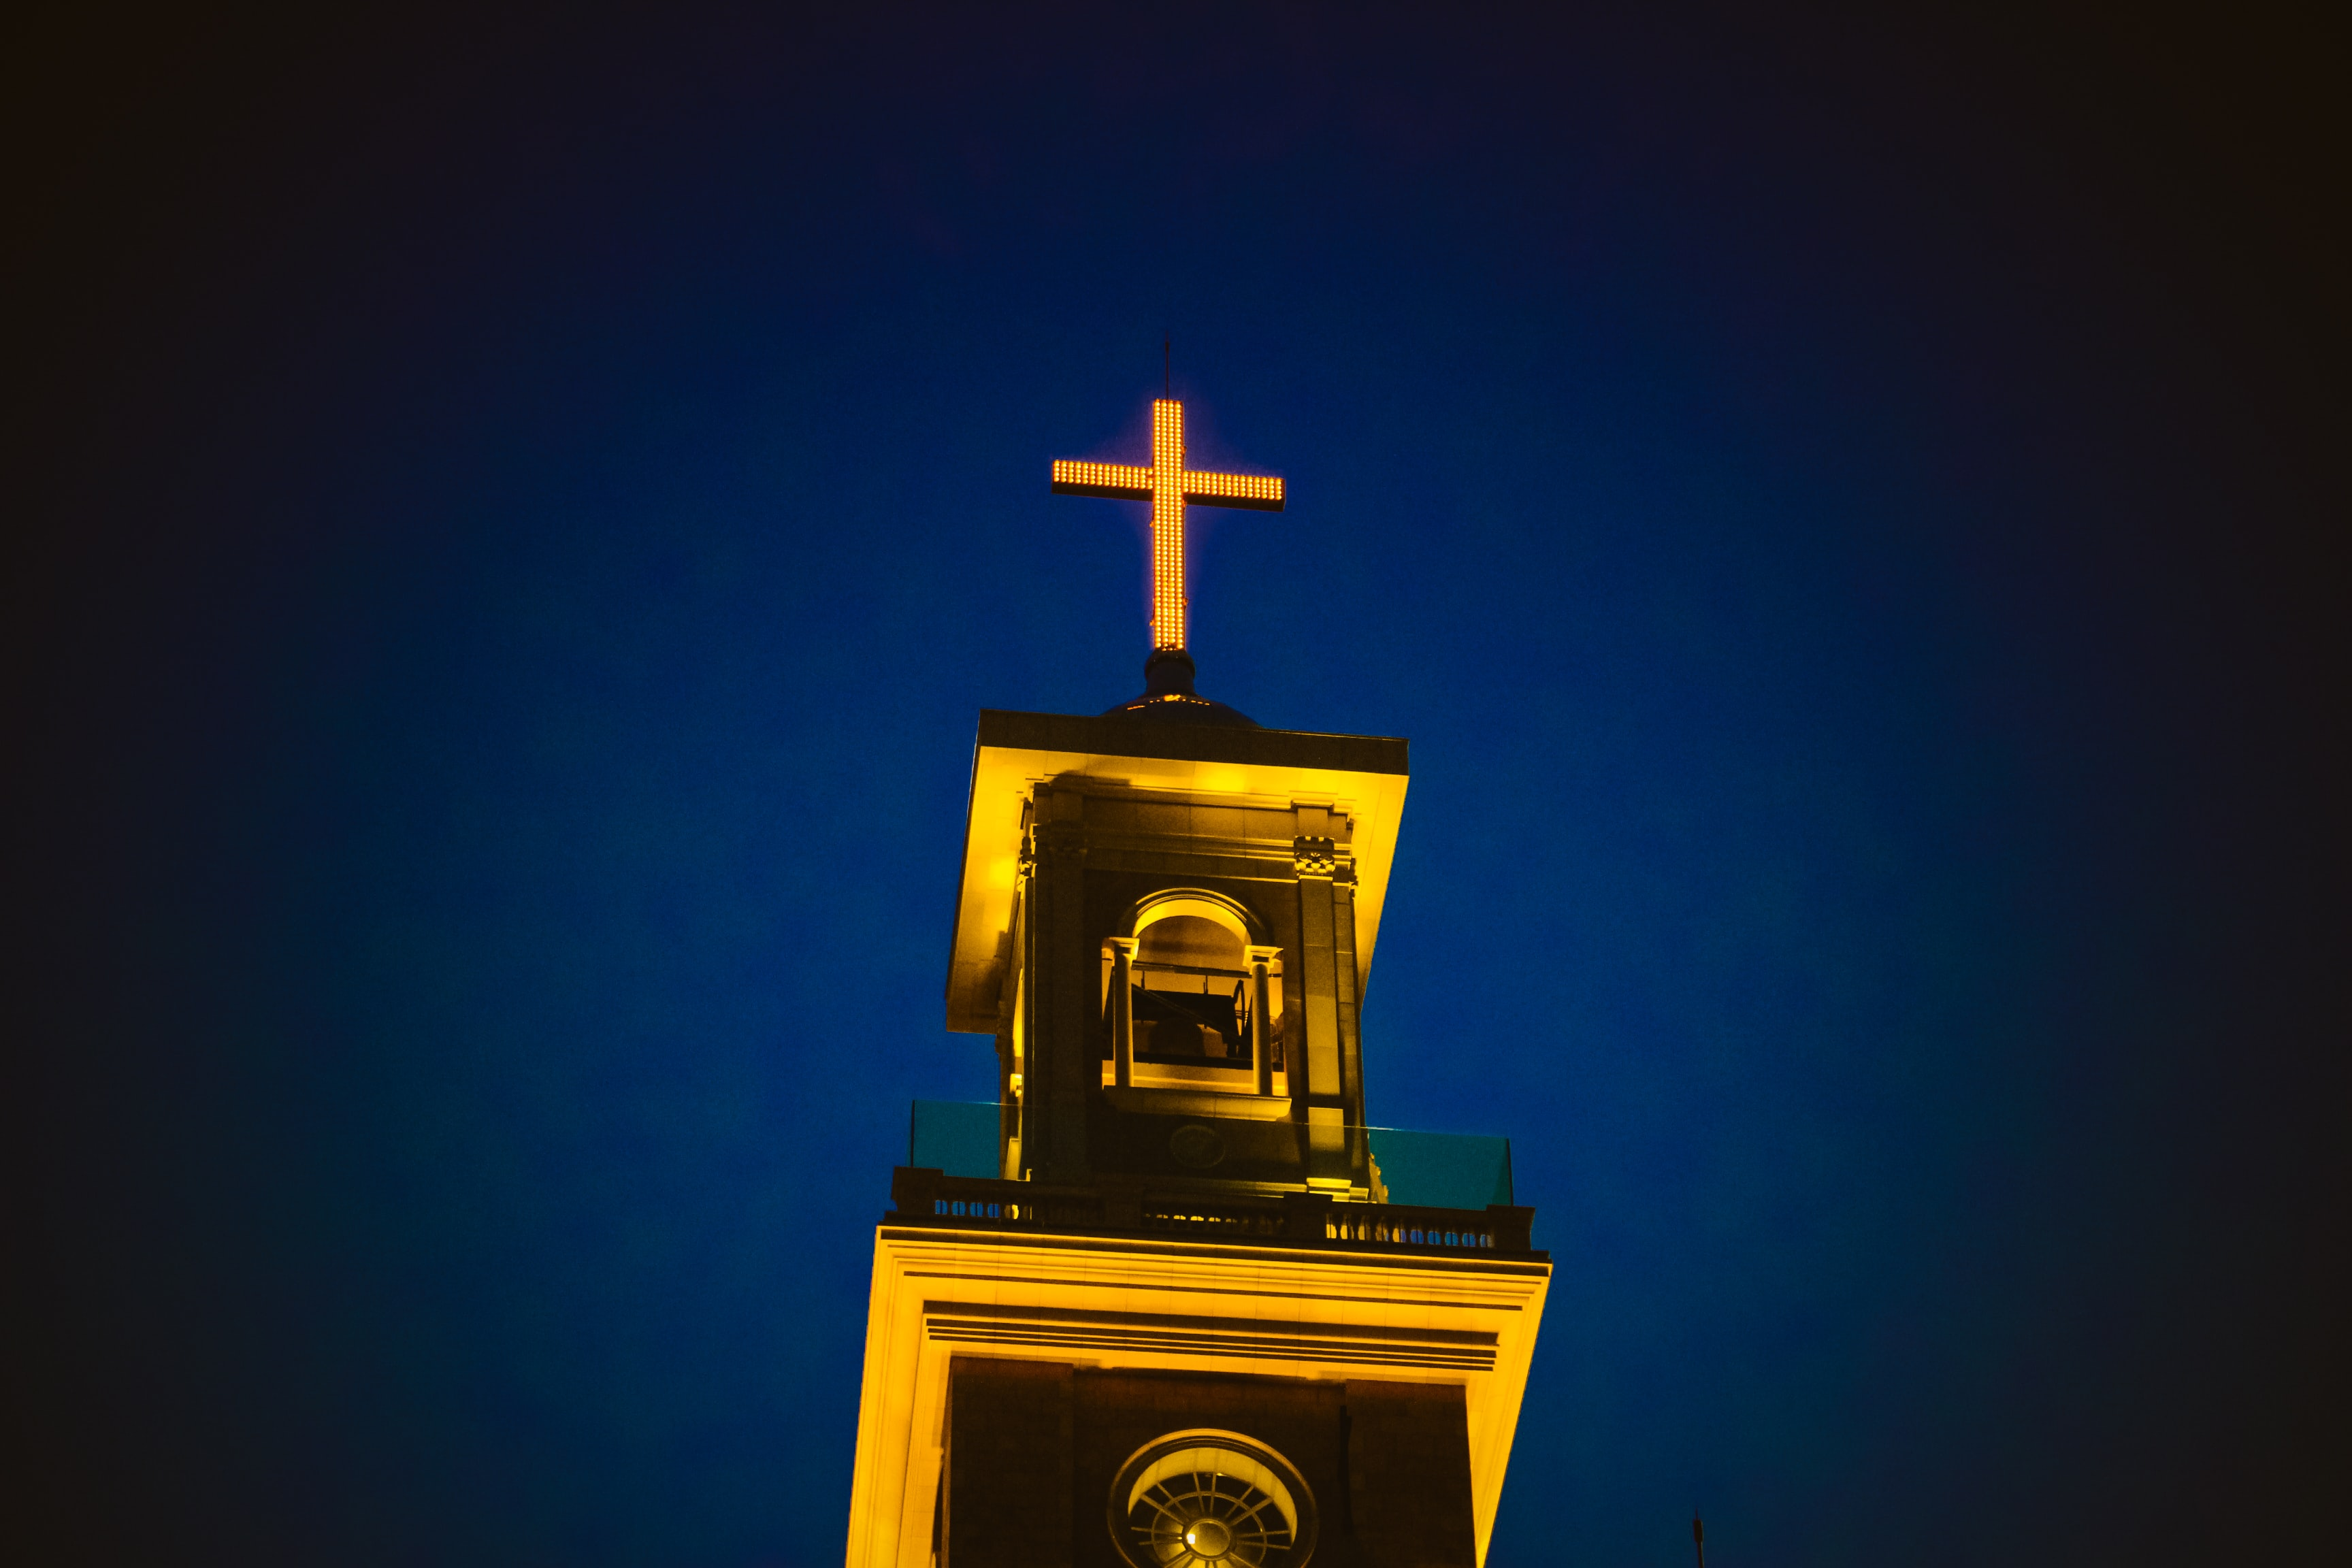 A lighted church steeple and cross against the dark blue night sky in Beirut.